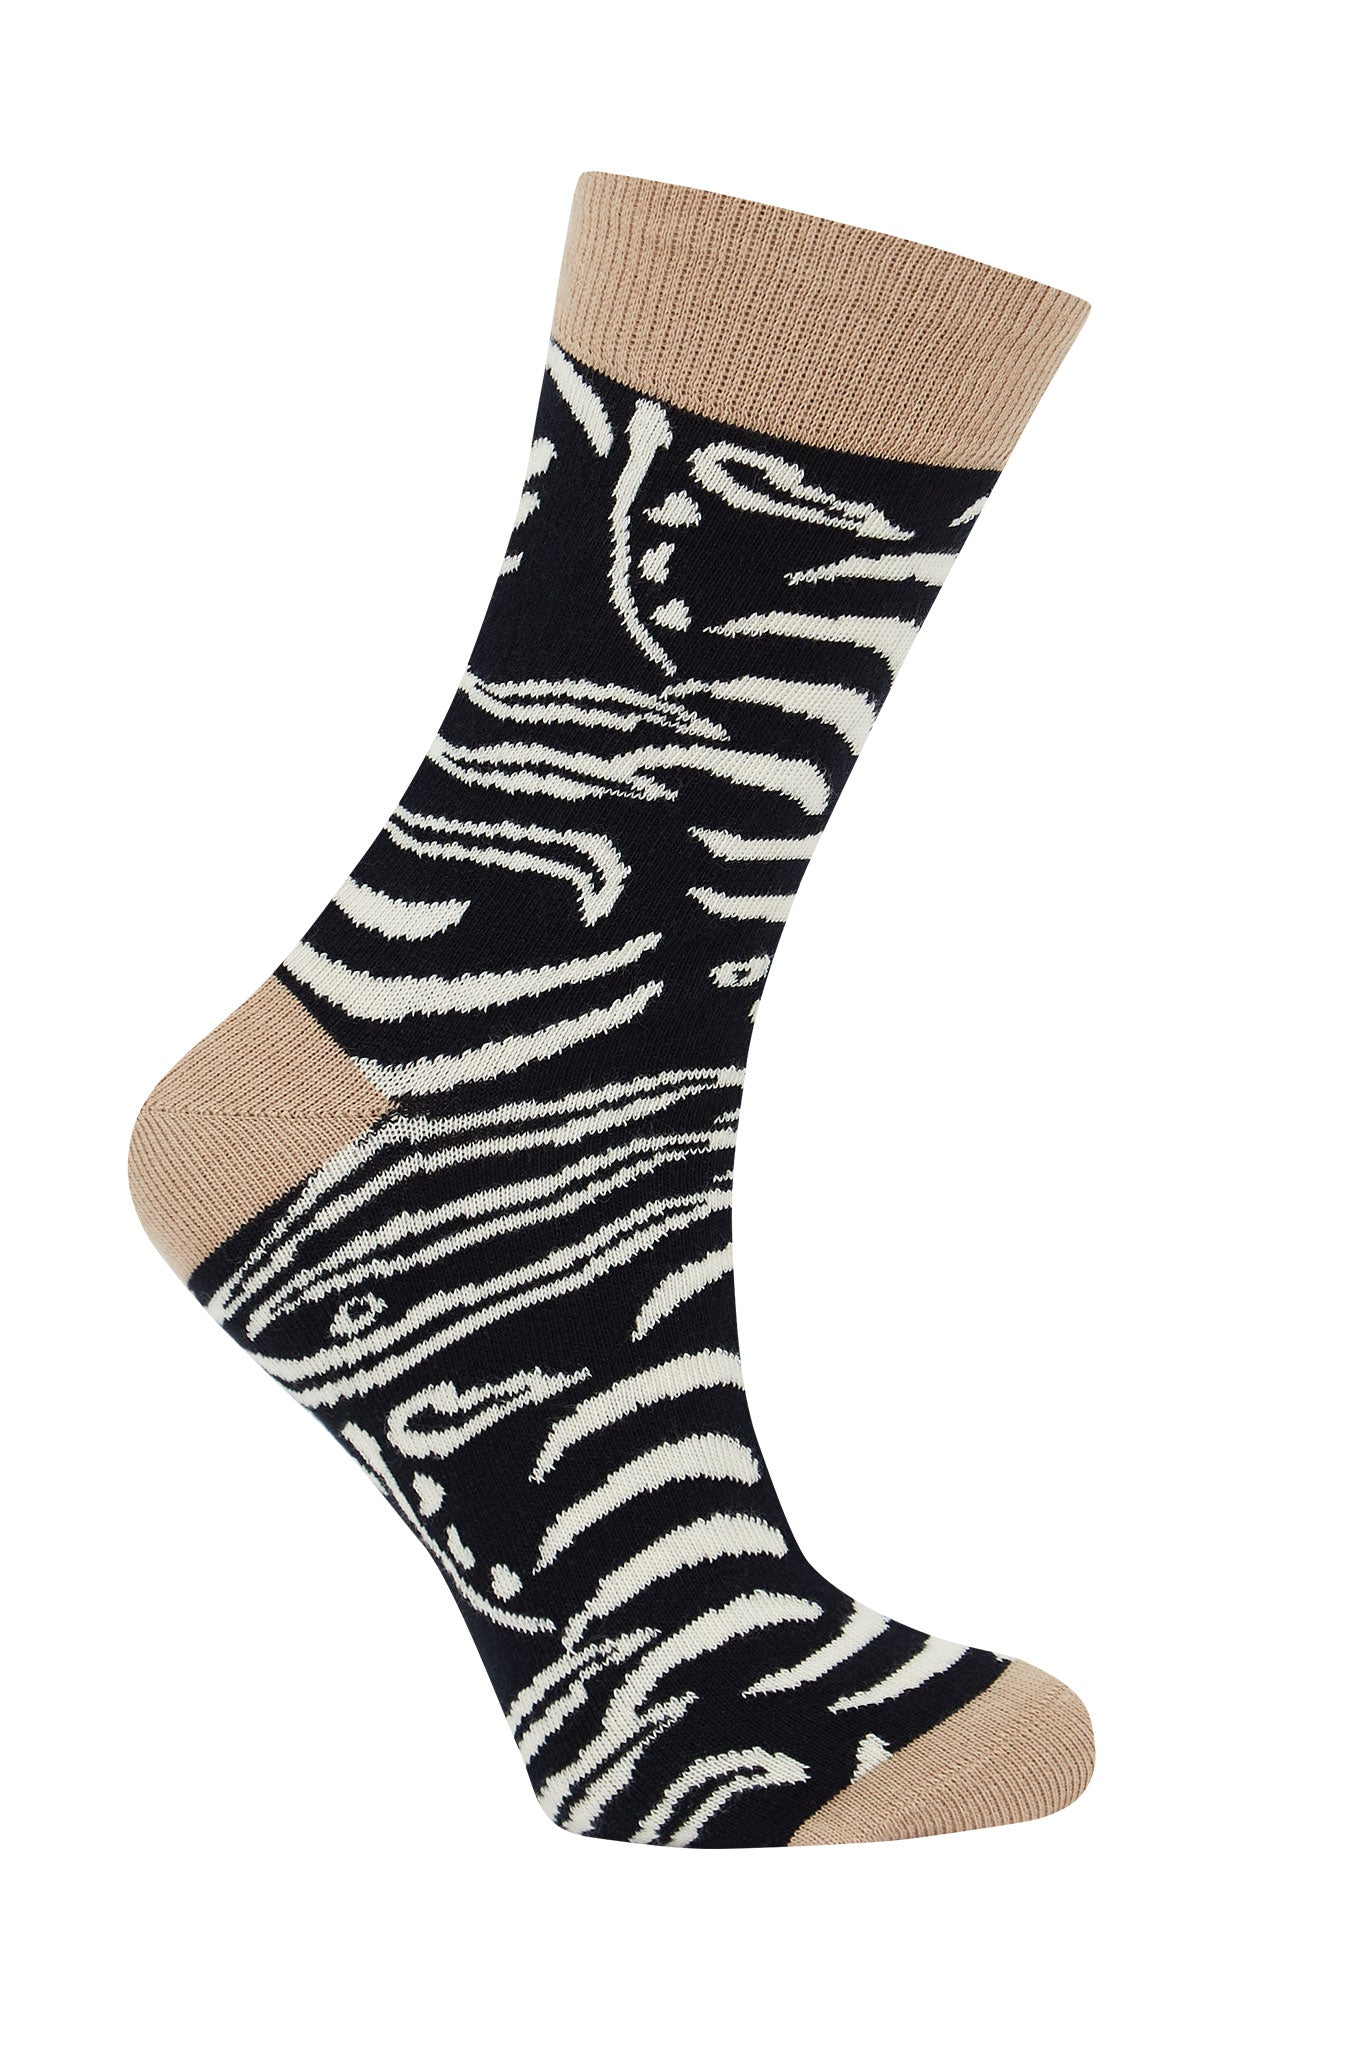 TIGER Ink - GOTS Organic Cotton Socks